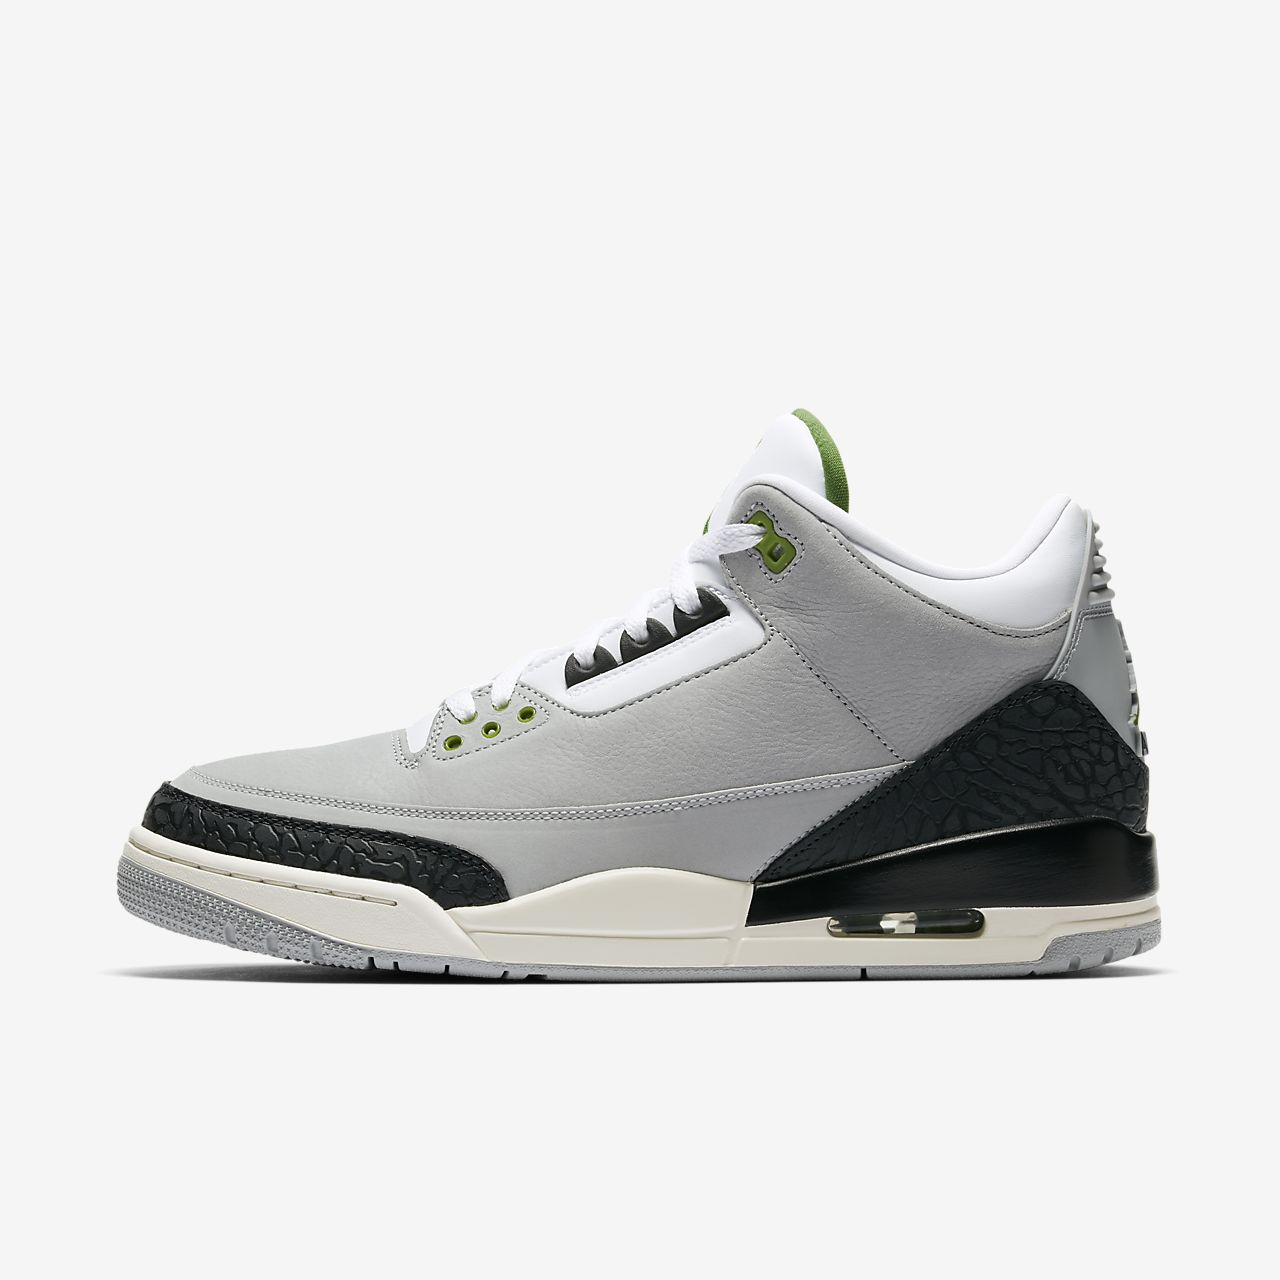 cheap for discount 243d0 35522 Chaussure Air Jordan 3 Retro pour Homme